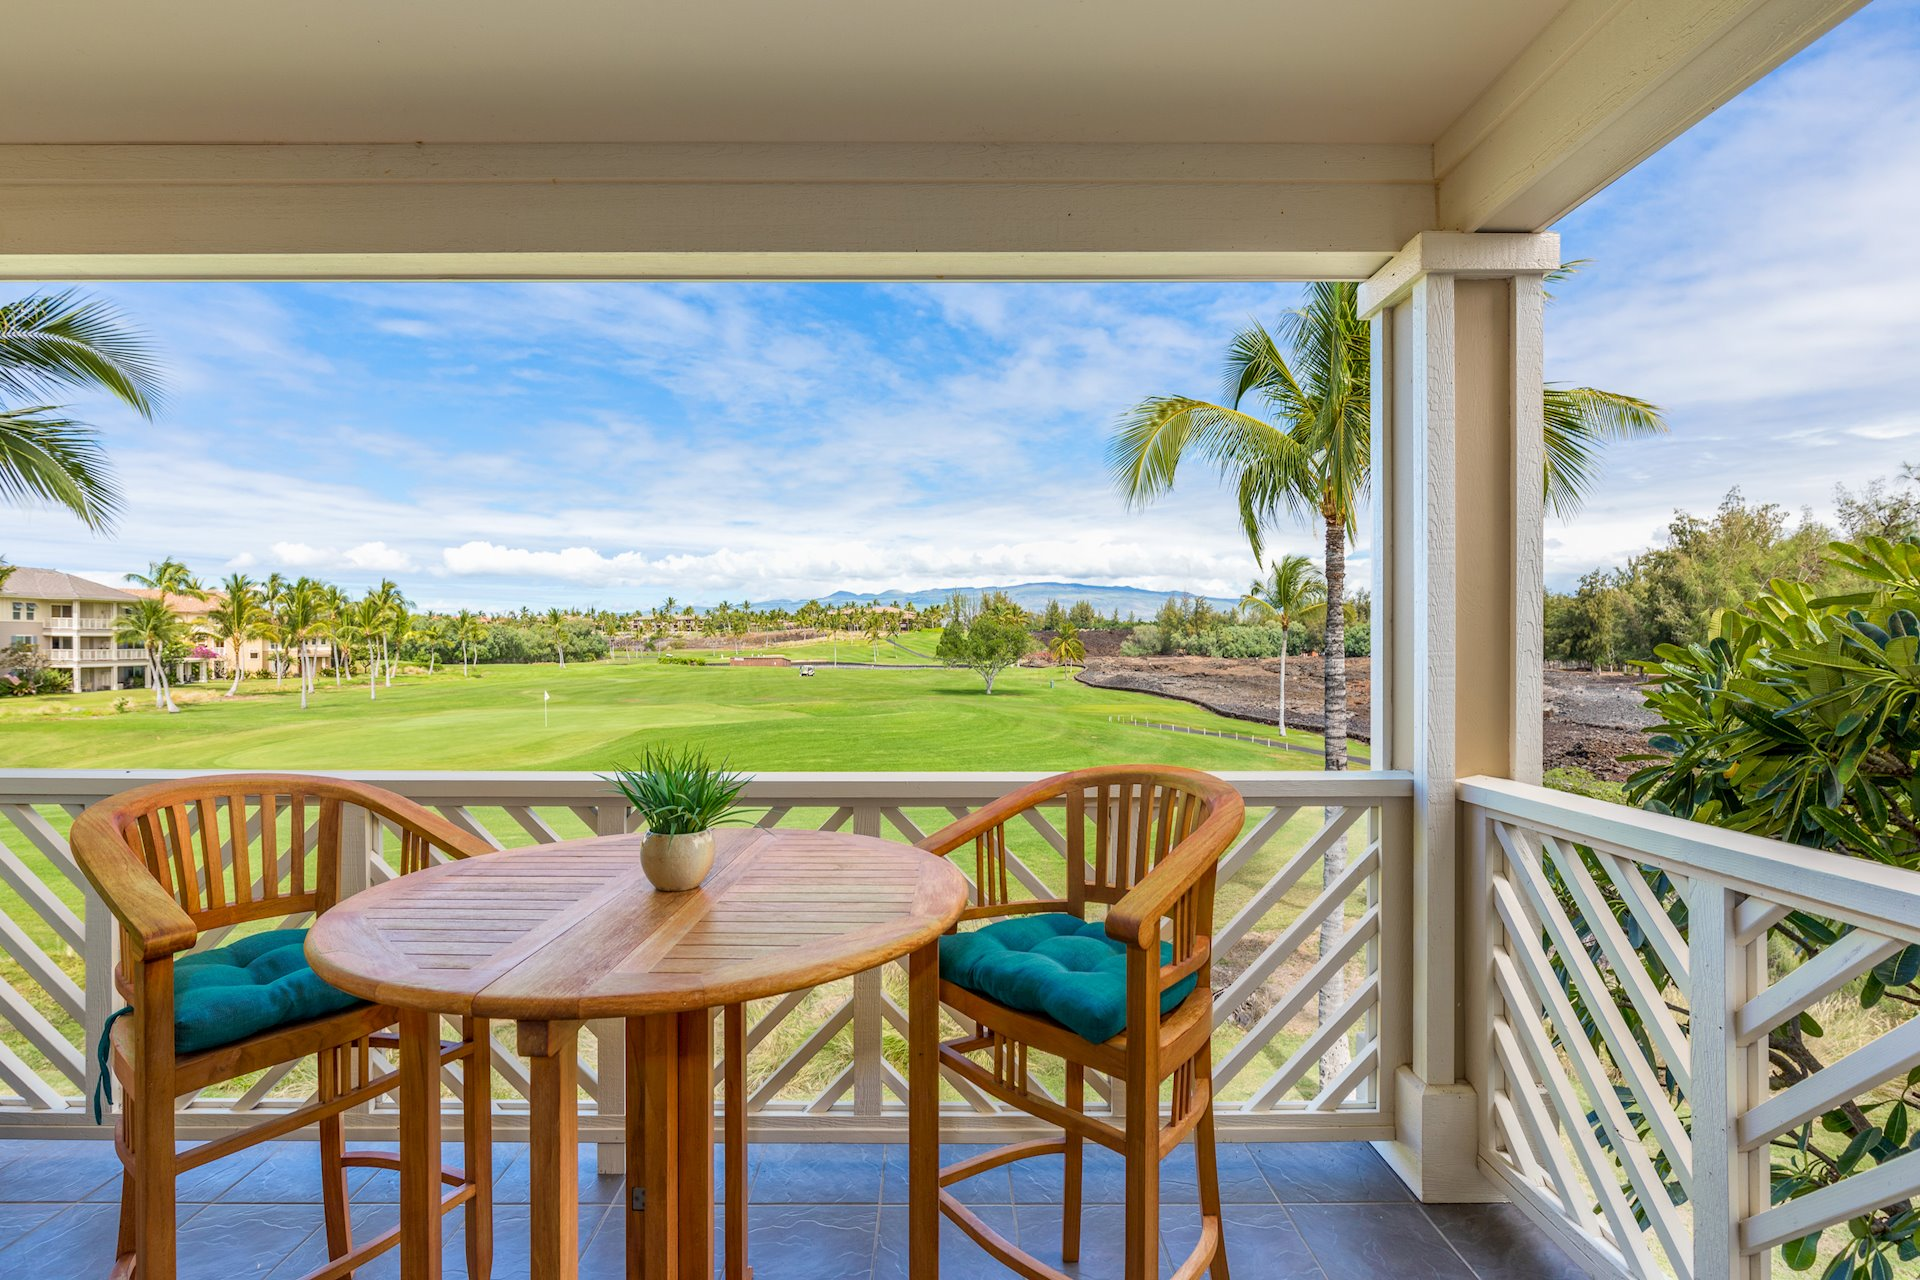 Enjoy the views from your lanai